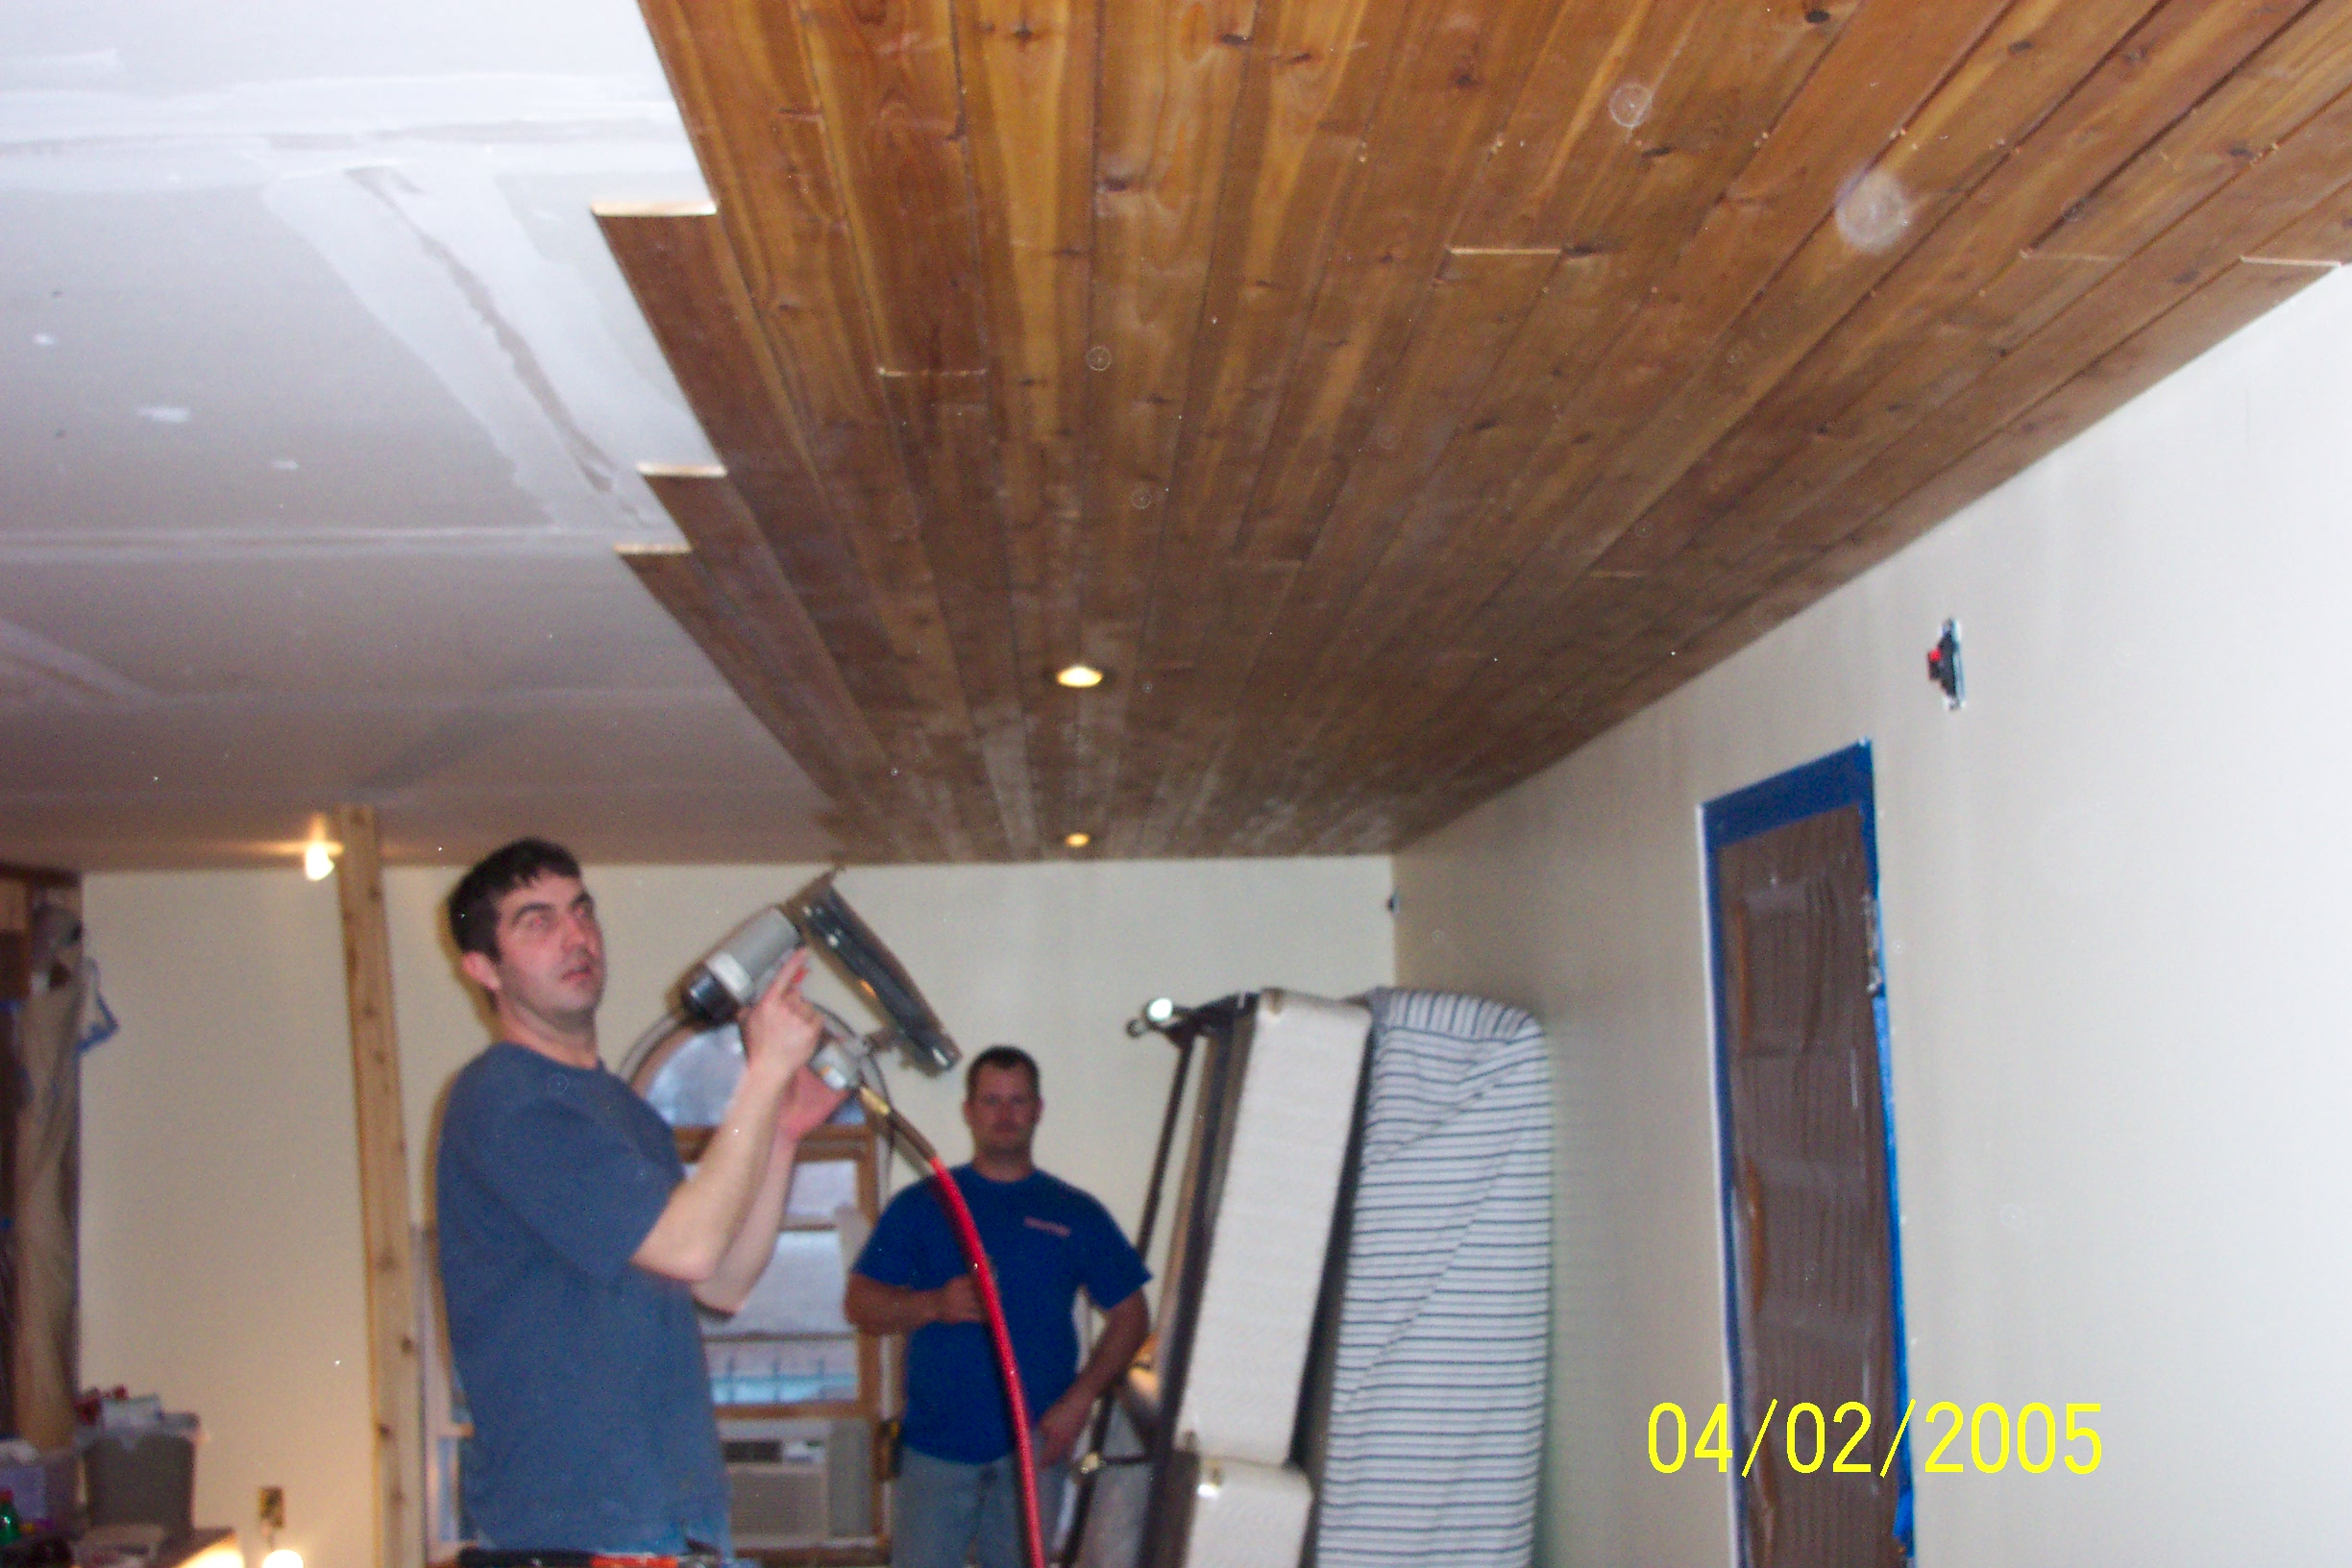 Perfect Dave U Kyle Doing Much Of The Work With Cedar Ceiling.